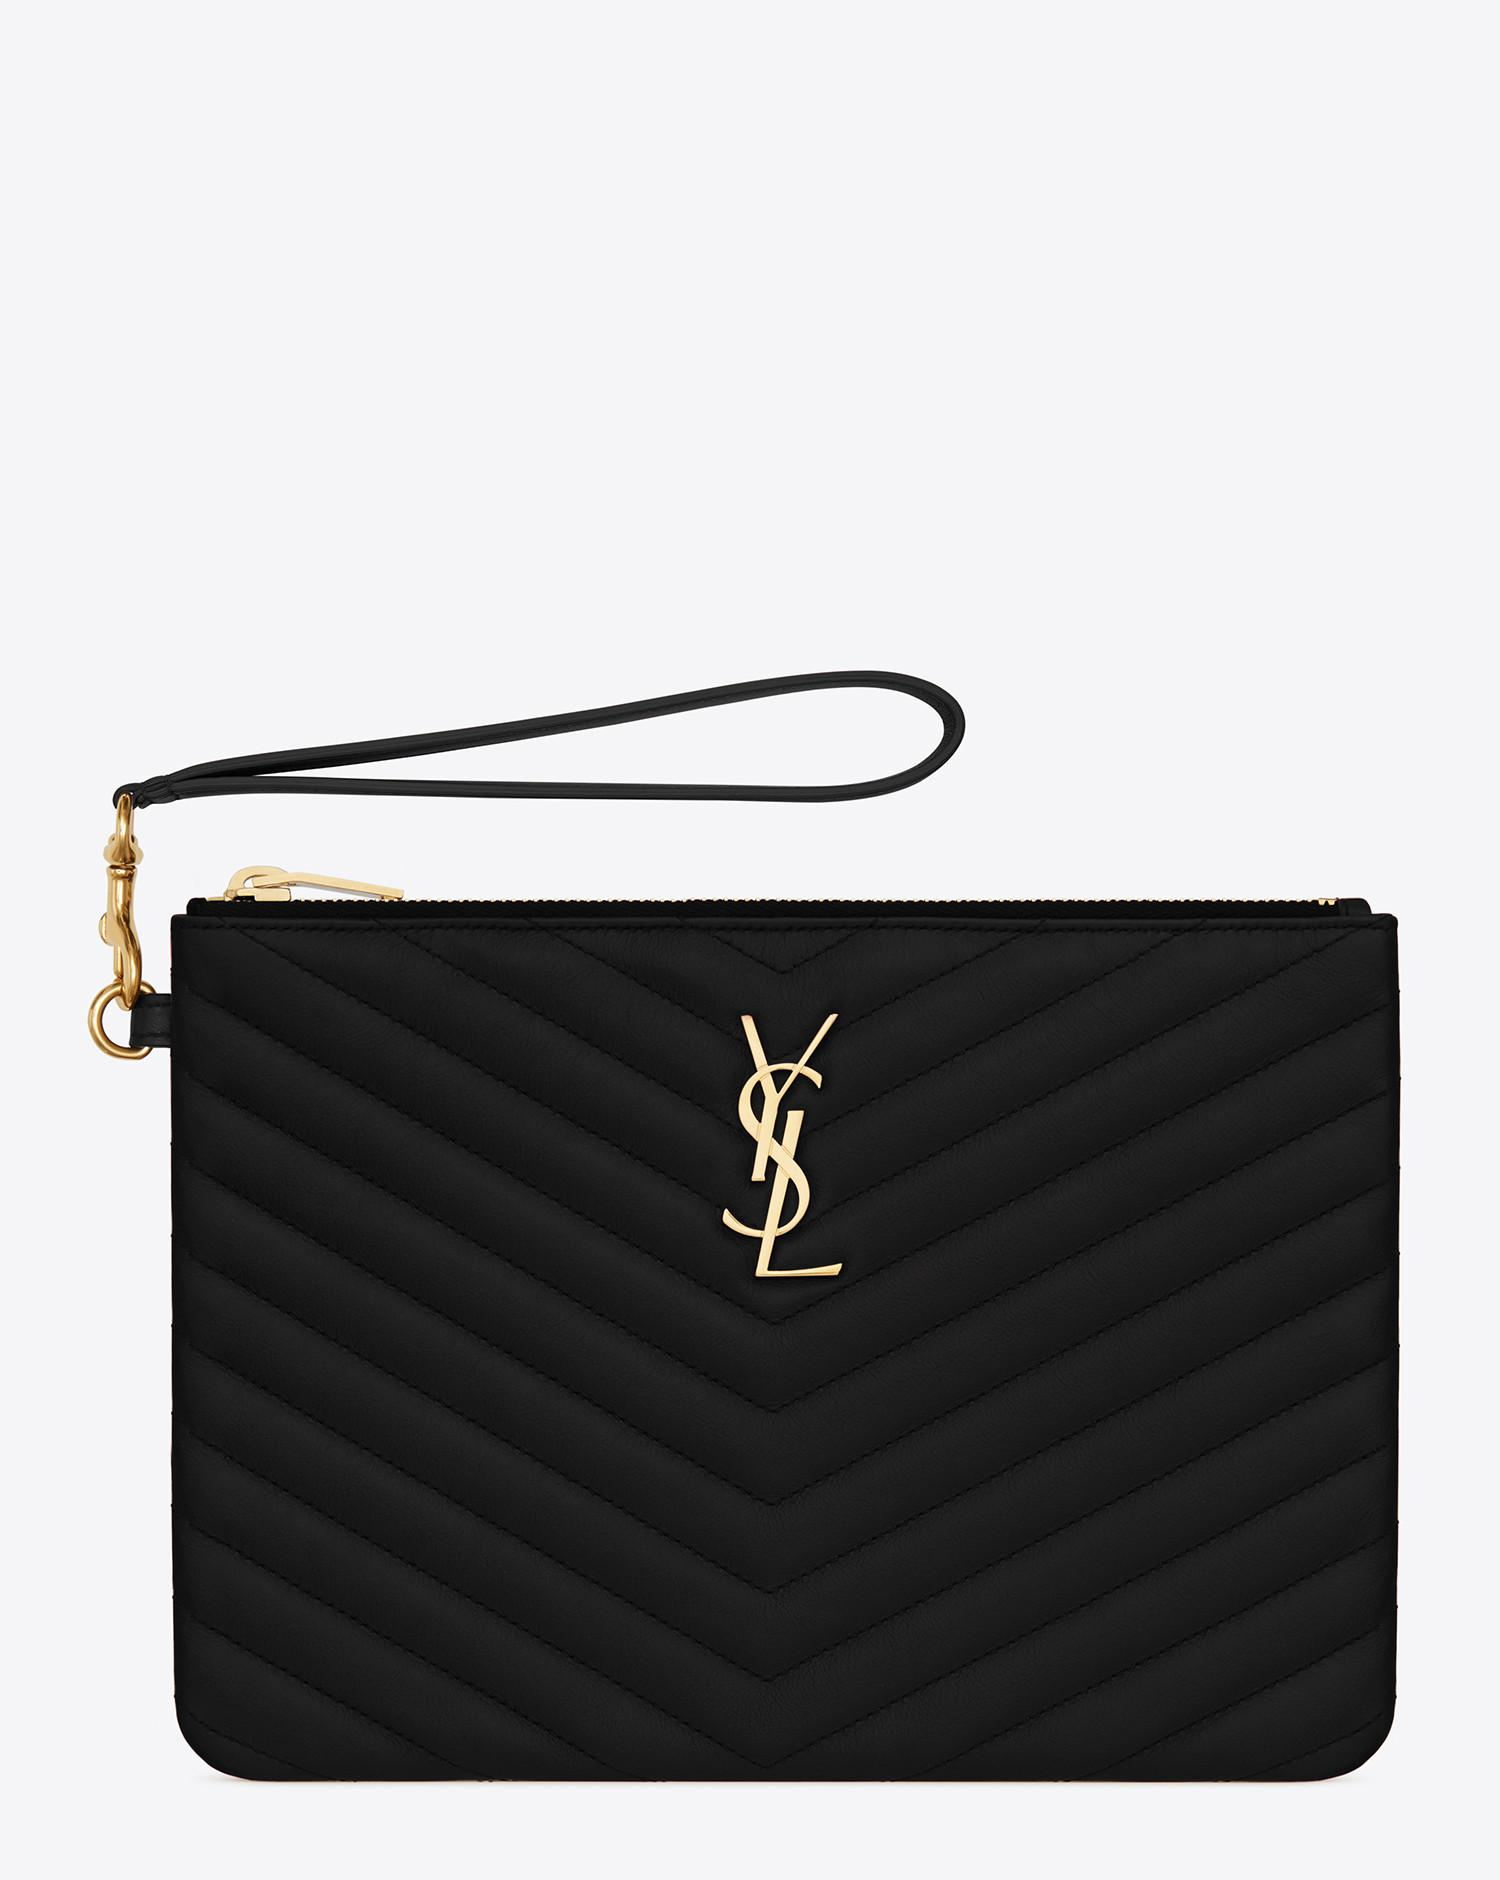 Lyst - Saint Laurent Monogram A5 Pouch In Matelassé Leather in Black 3c7d2b40833b1